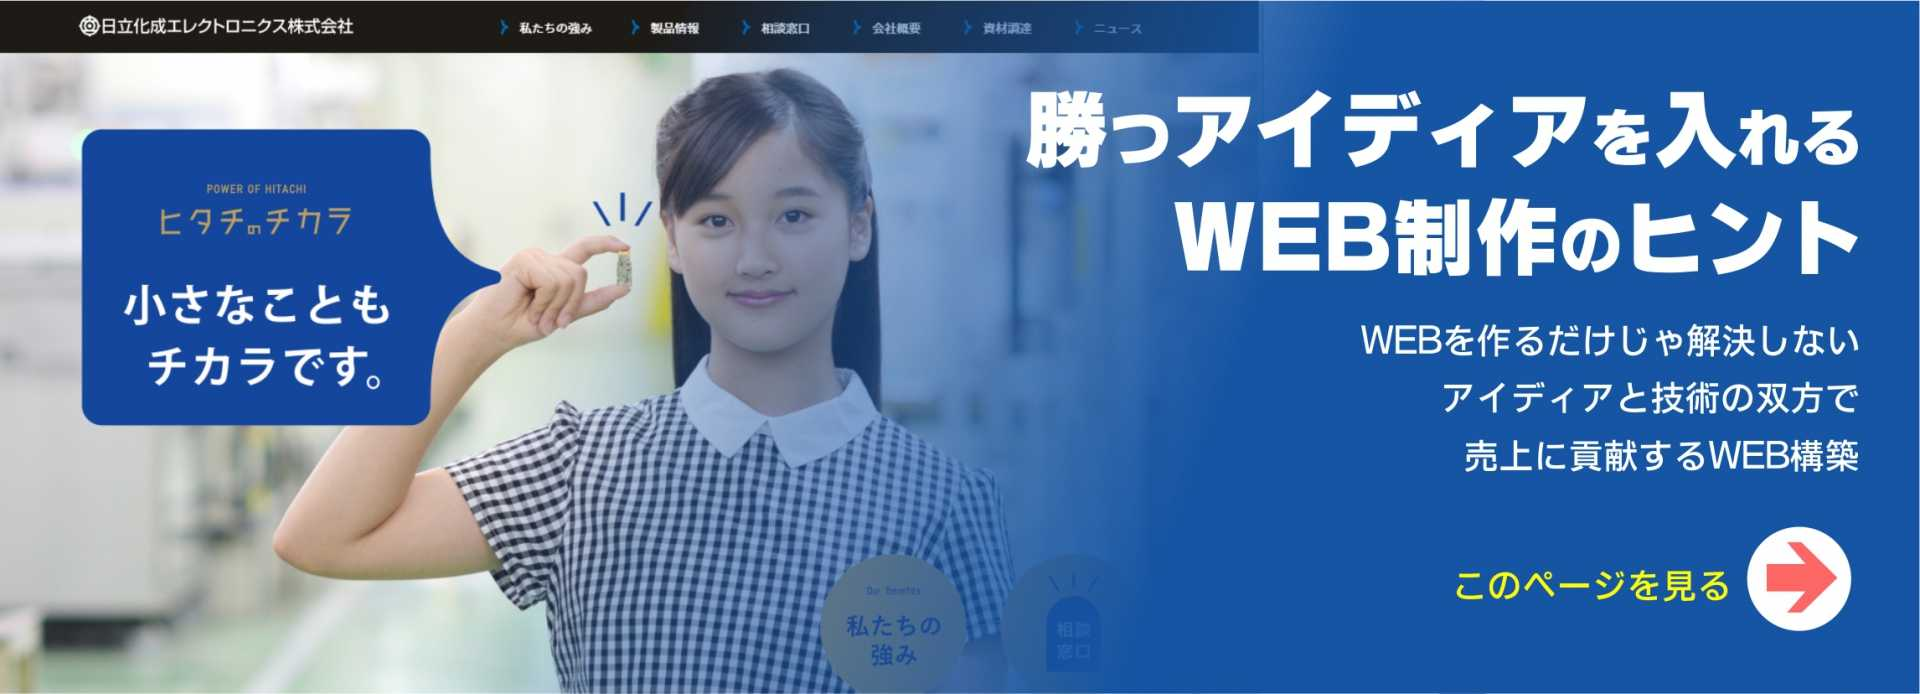 WEB制作のヒント